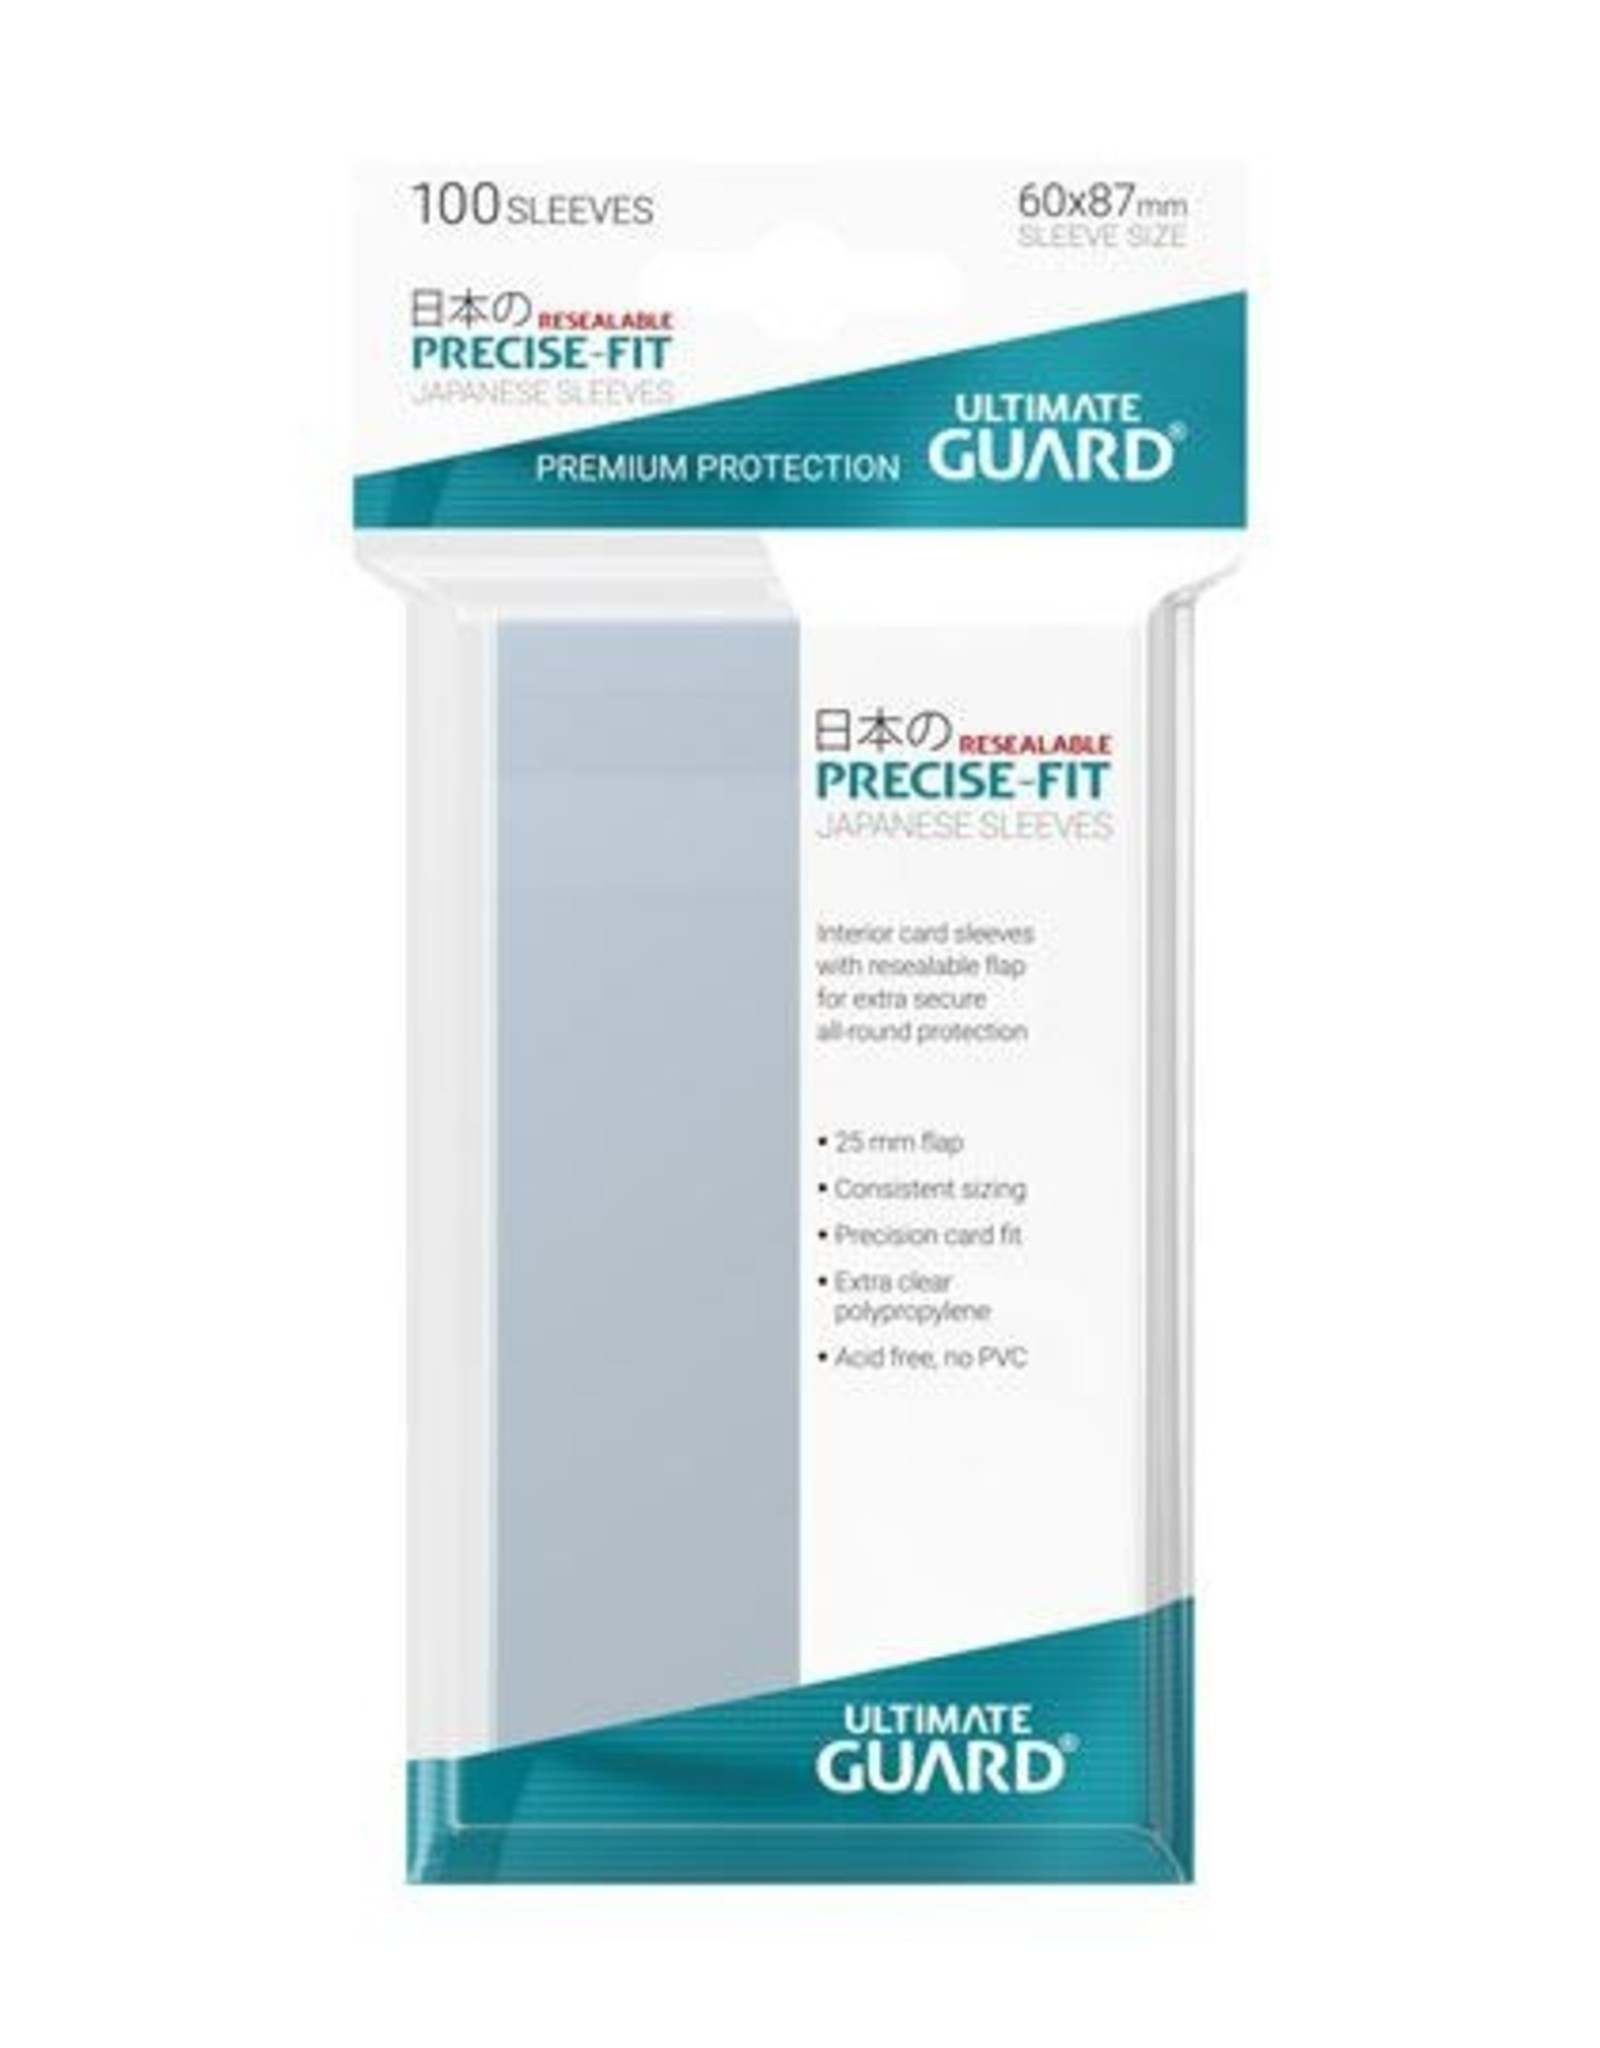 ULTIMATE GUARD Ultimate Guard Precise-Fit Sleeves Resealable Japanese Size Transparent (100)